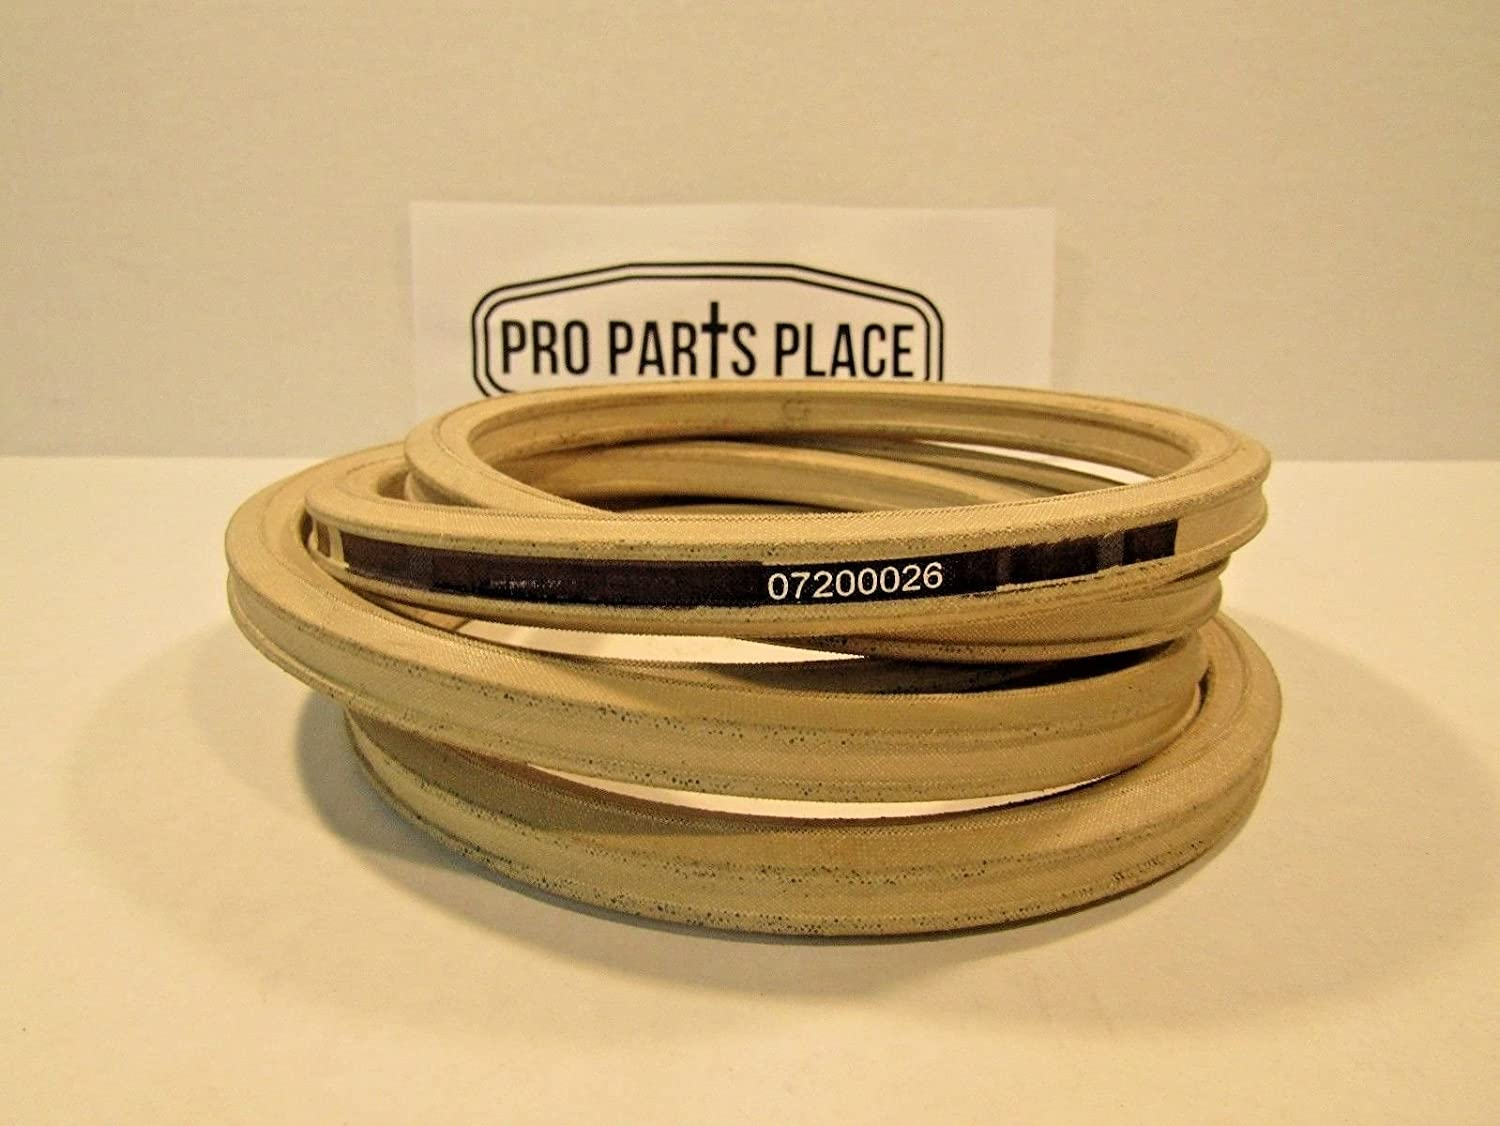 Aramid Exact OEM Spec Belt Ariens Gravely 07200026 7200026 Pro Turn-Double V